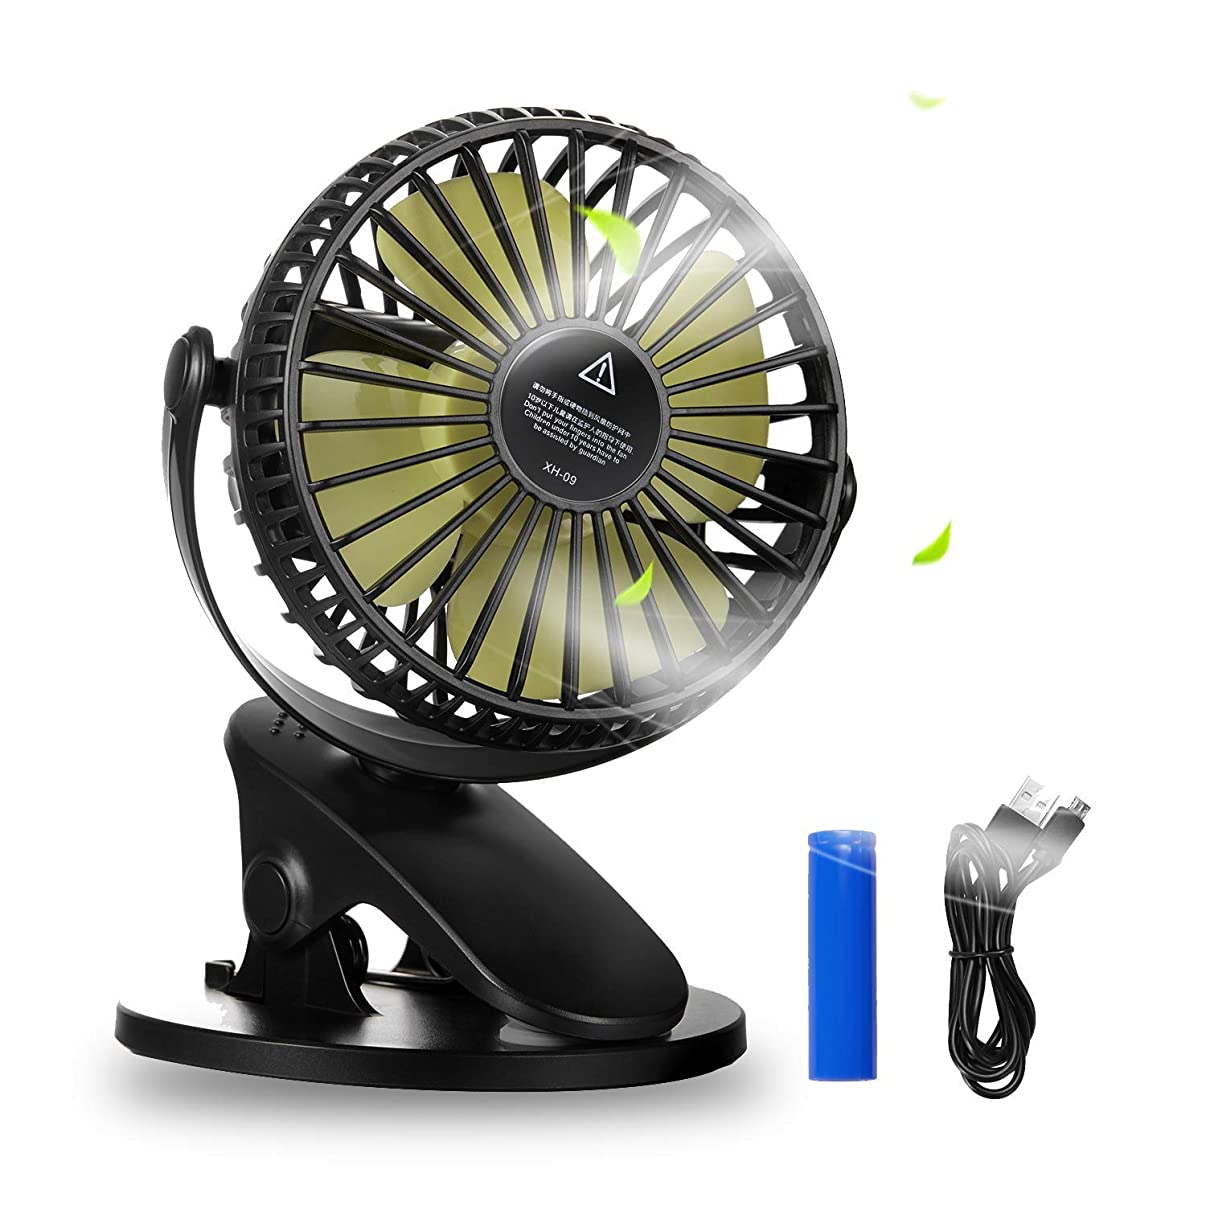 Battery Operated Clip on Fan, HOCOMO Baby Stroller Fan with 3 Speeds 360° Rotation Rechargeable Battery USB Powered Quite Mini Desk Fan for Office, Home, Gym, Dorm, Camping, Travel, Indoor and Outdoor